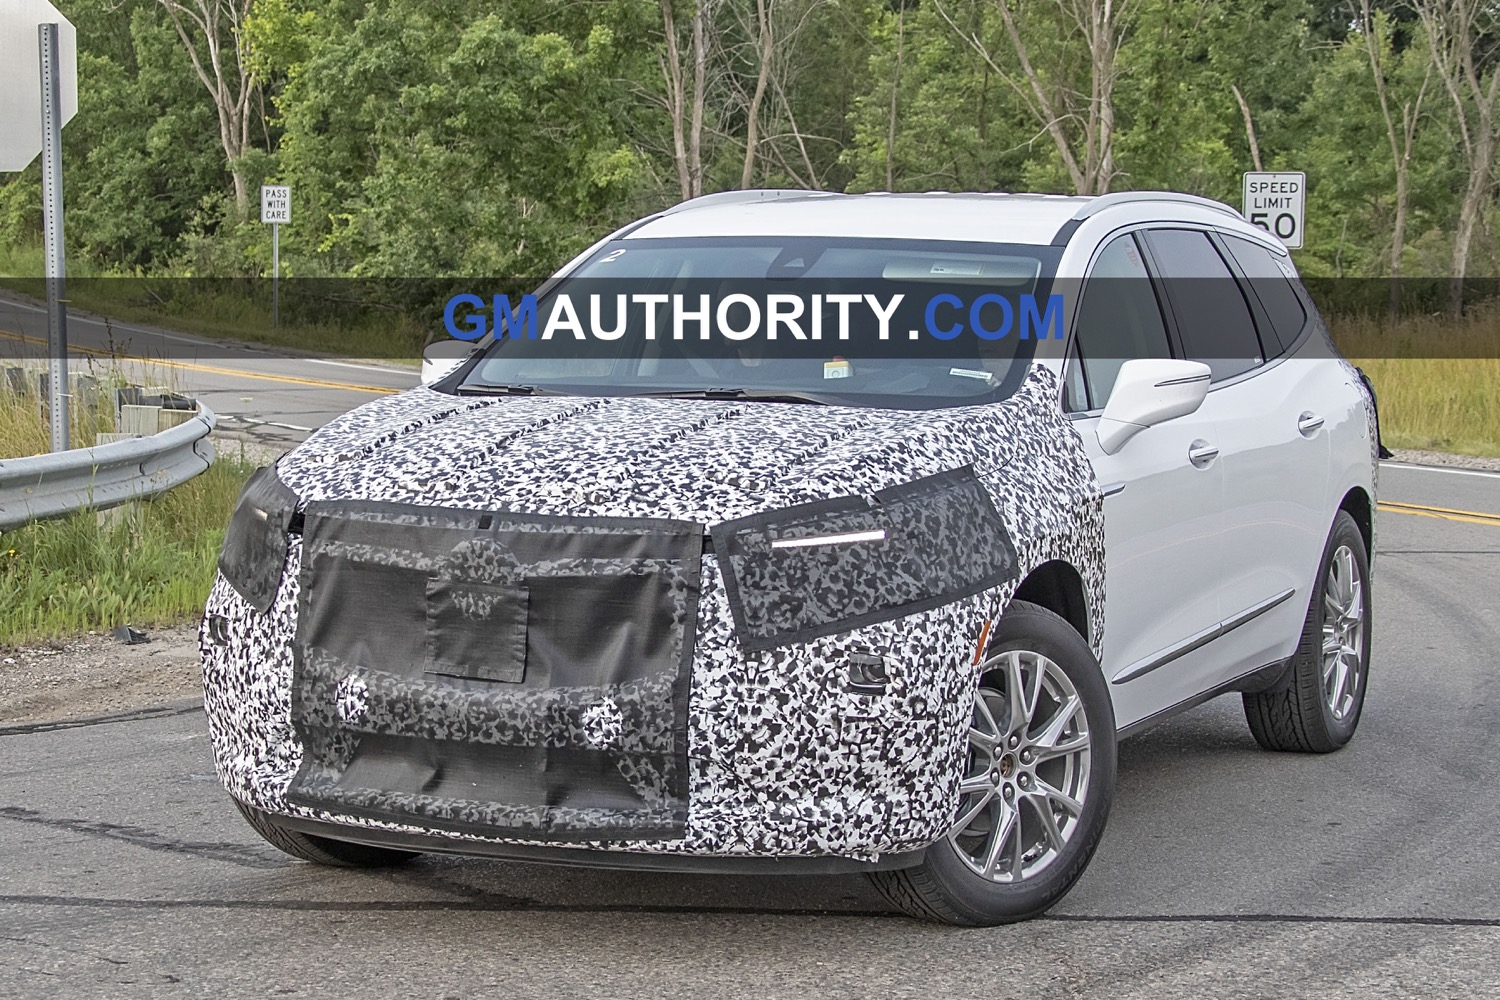 Buick Enclave Refresh Pushed Back To 2022   Gm Authority 2022 Buick Enclave Avenir Standard Features, Used, Reviews